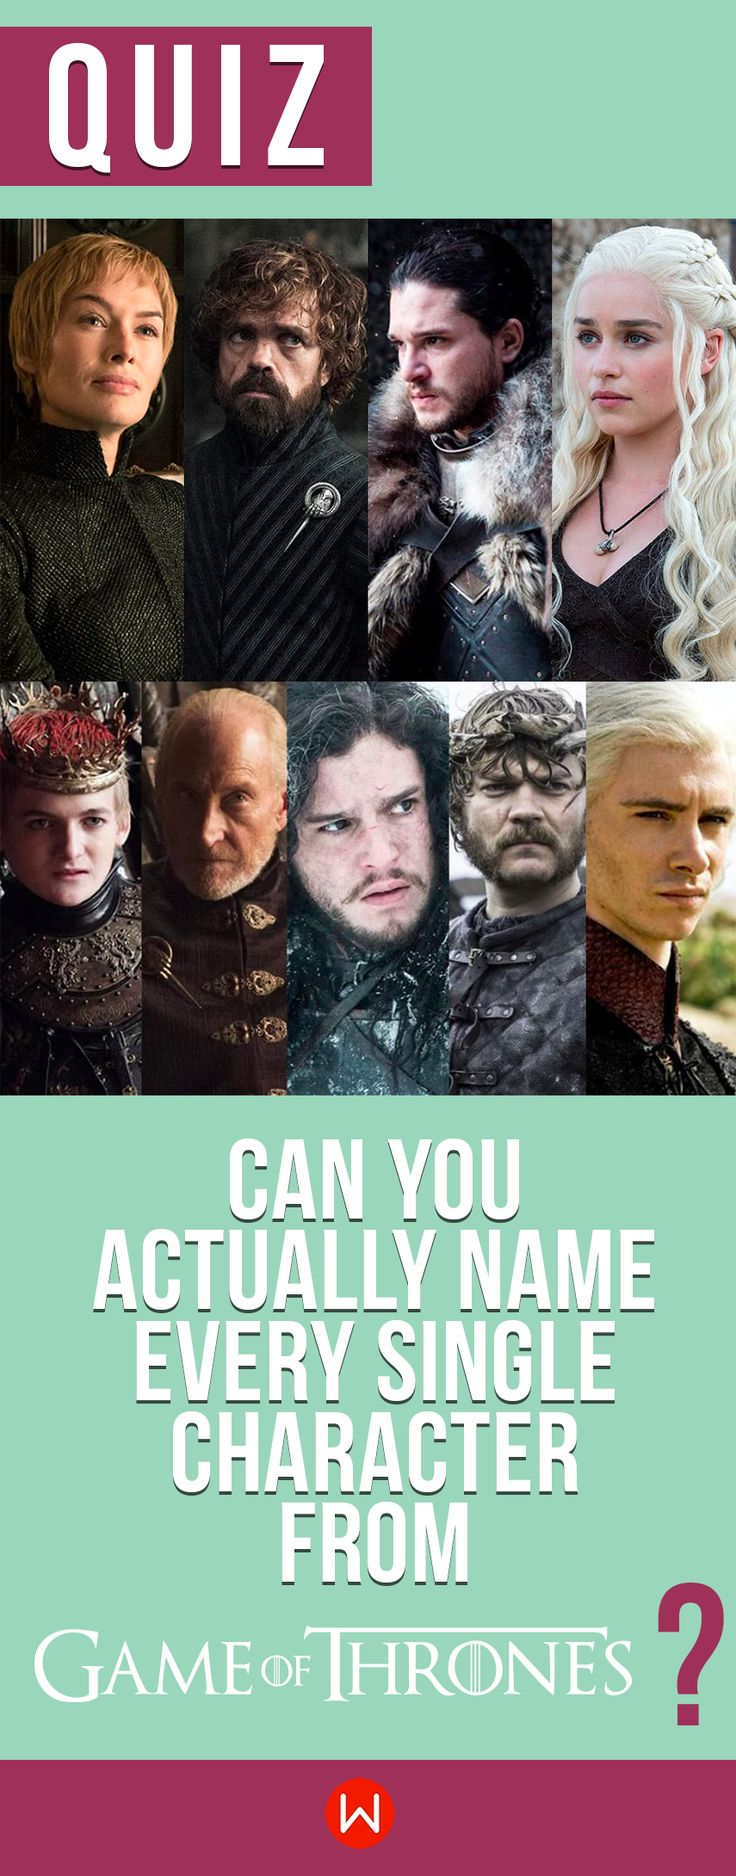 Quiz: Can you name EVERY Game of Thrones character? TV Show Quiz, Tv Show Trivia, GoT Quiz, Game of Thrones Test, Buzzfeed Quizzes, Playbuzz Quiz